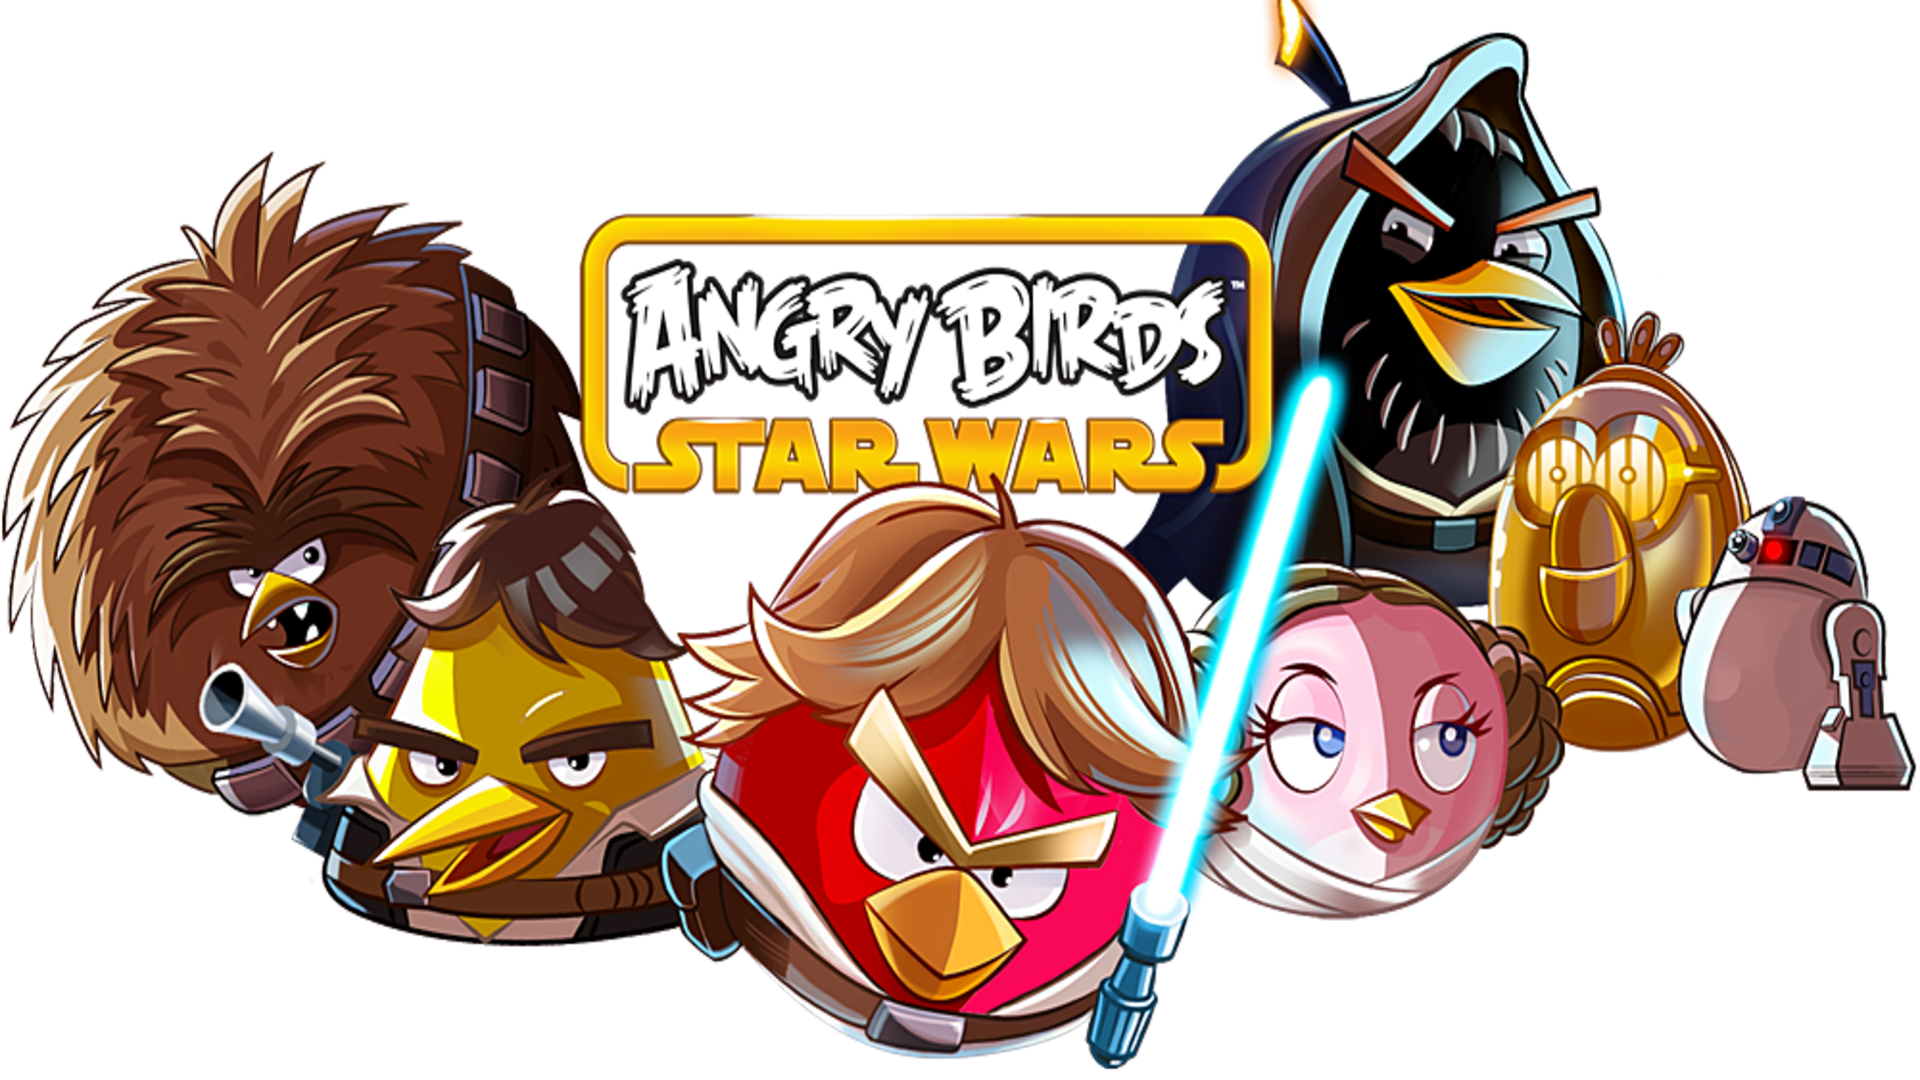 Angry birds star wars wallpaper 7 - Angry birds star wars 7 ...